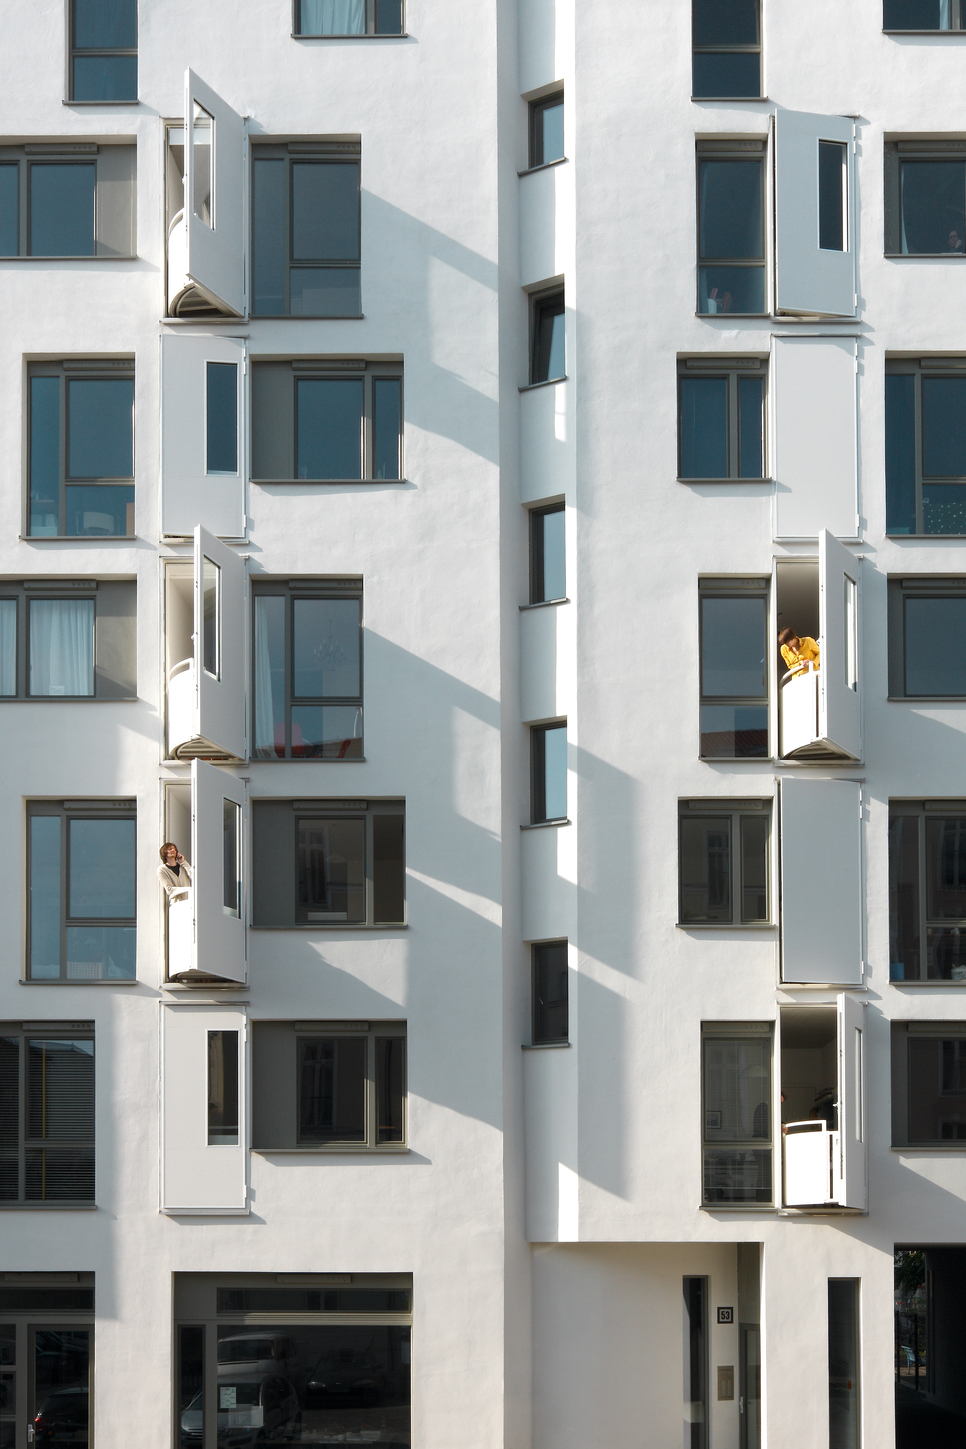 Architect Florian Koehl worked closely with owners to design fold-out balconies at Strelitzer Strasse 53. Andrea Kroth, Author provided